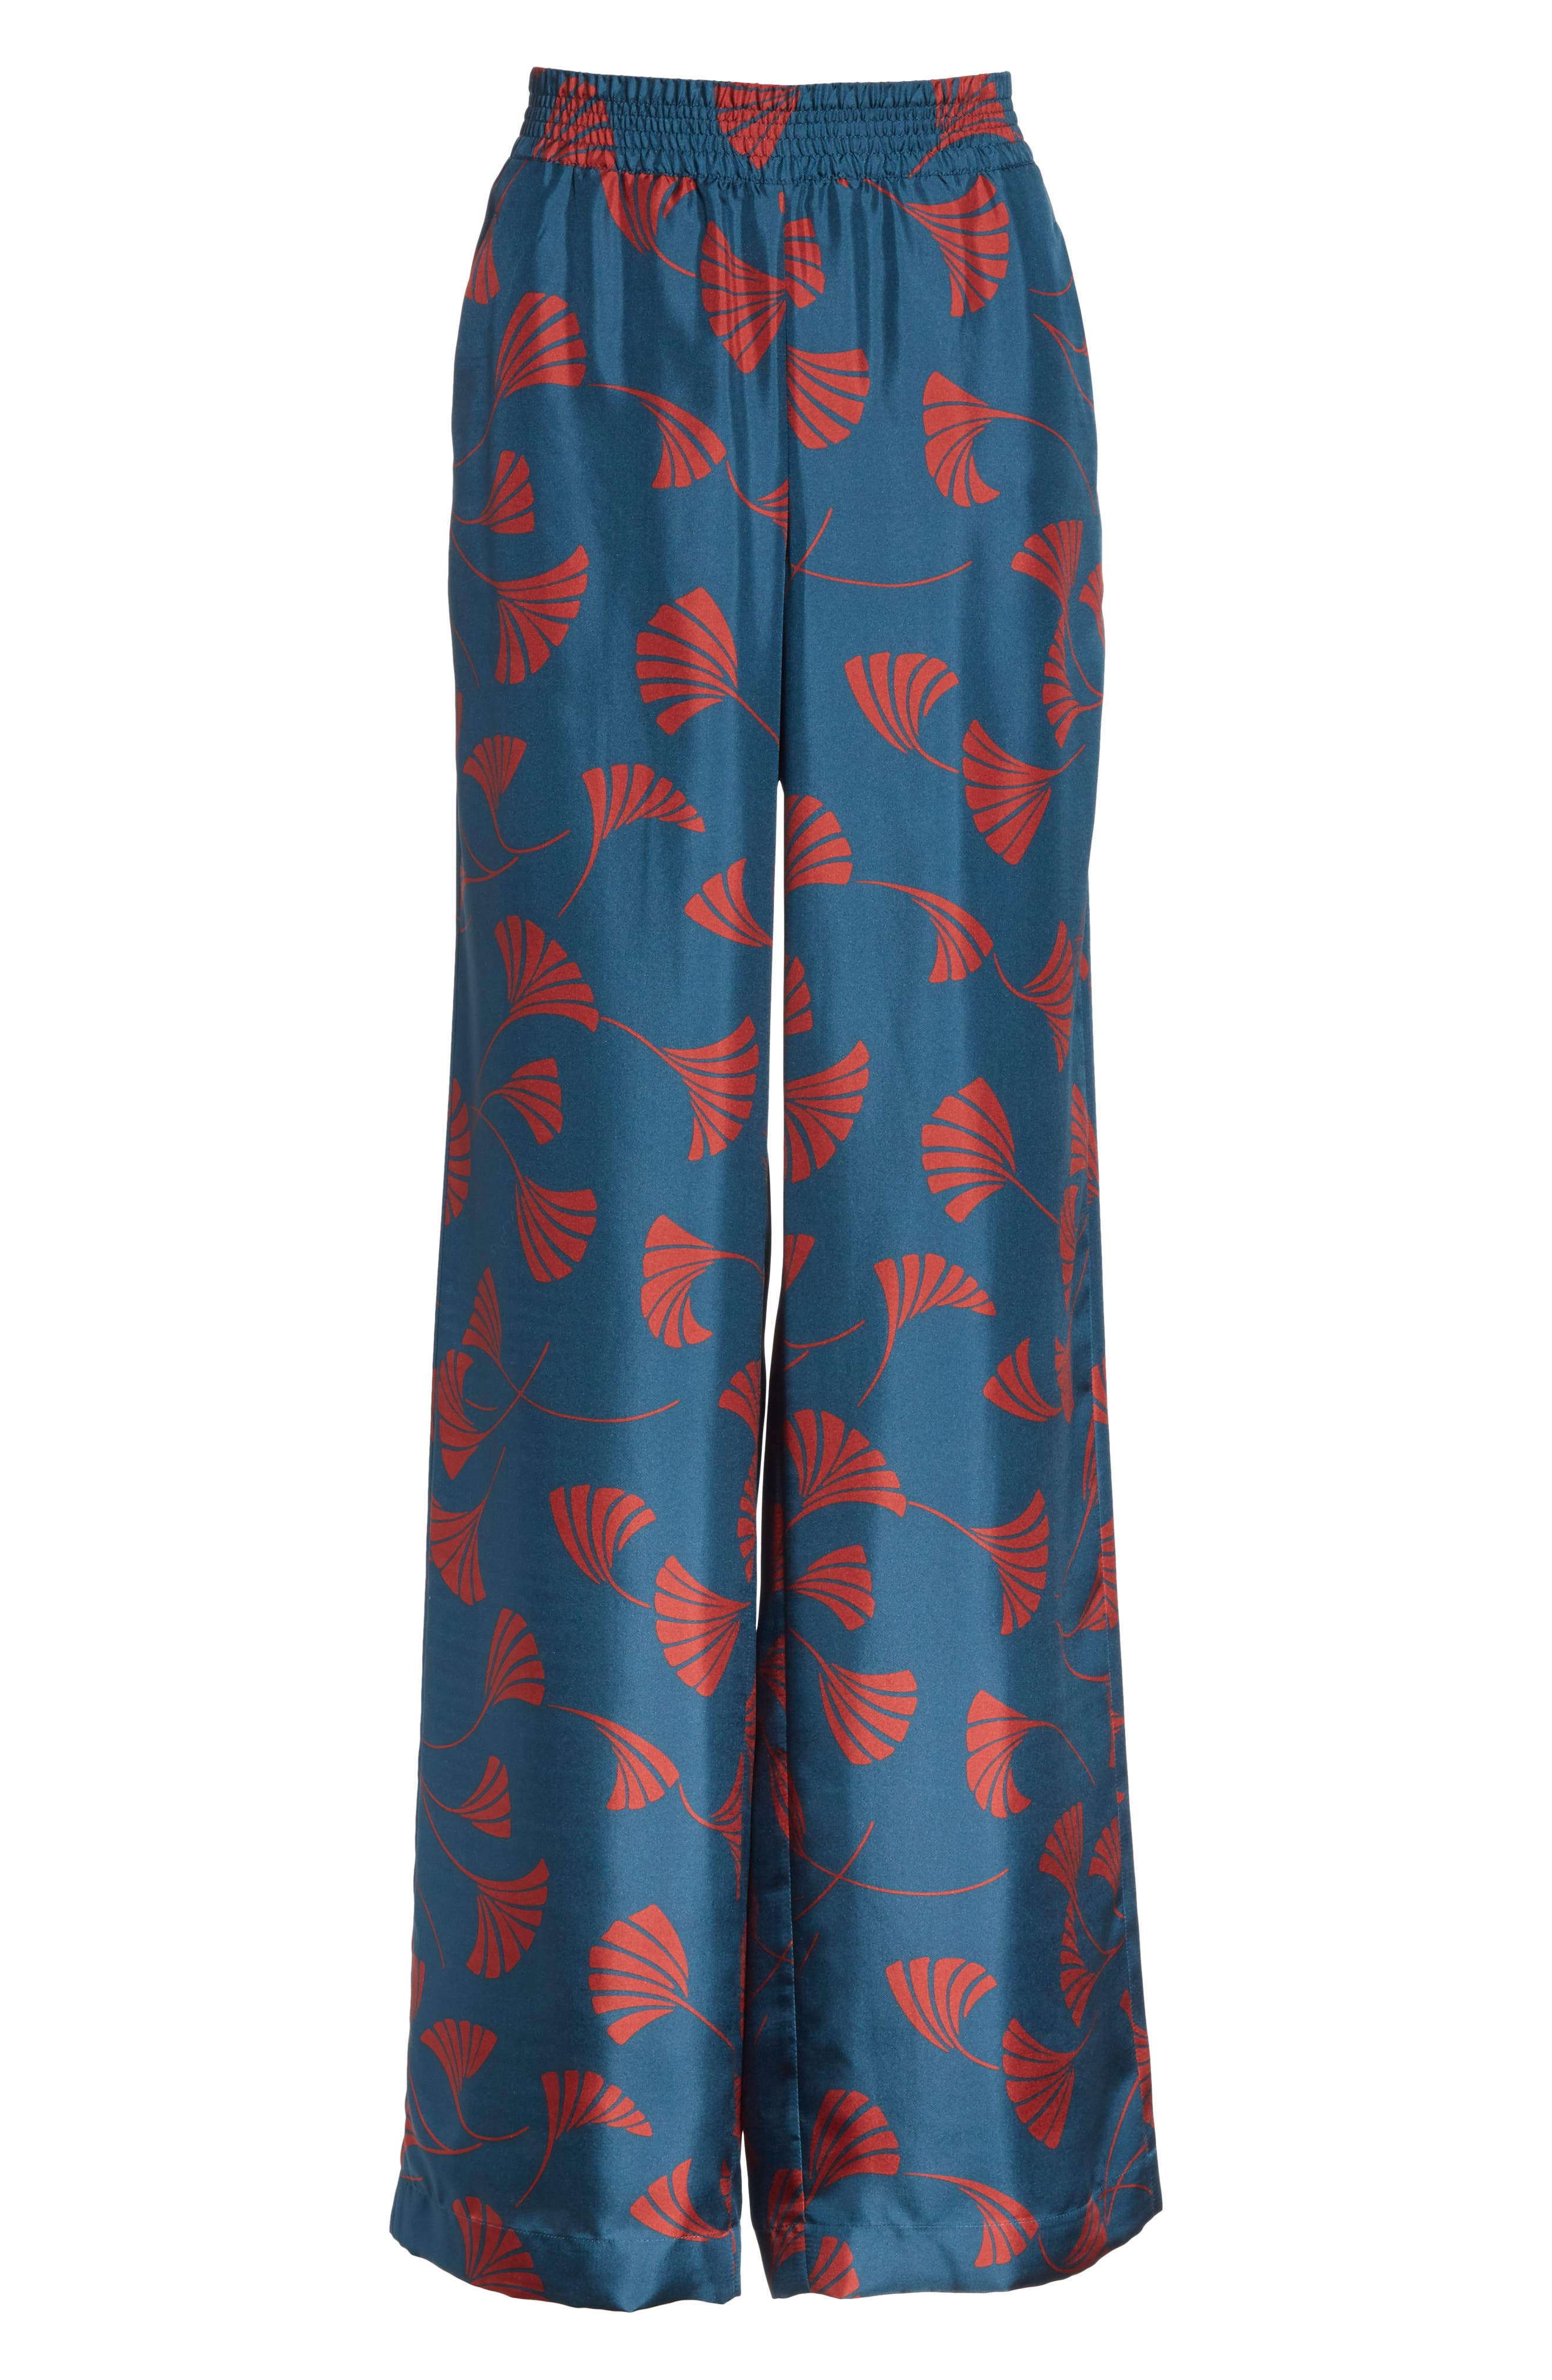 Hester Silk Wide Leg Pants,                             Alternate thumbnail 6, color,                             EMPRESS TEAL MULTI